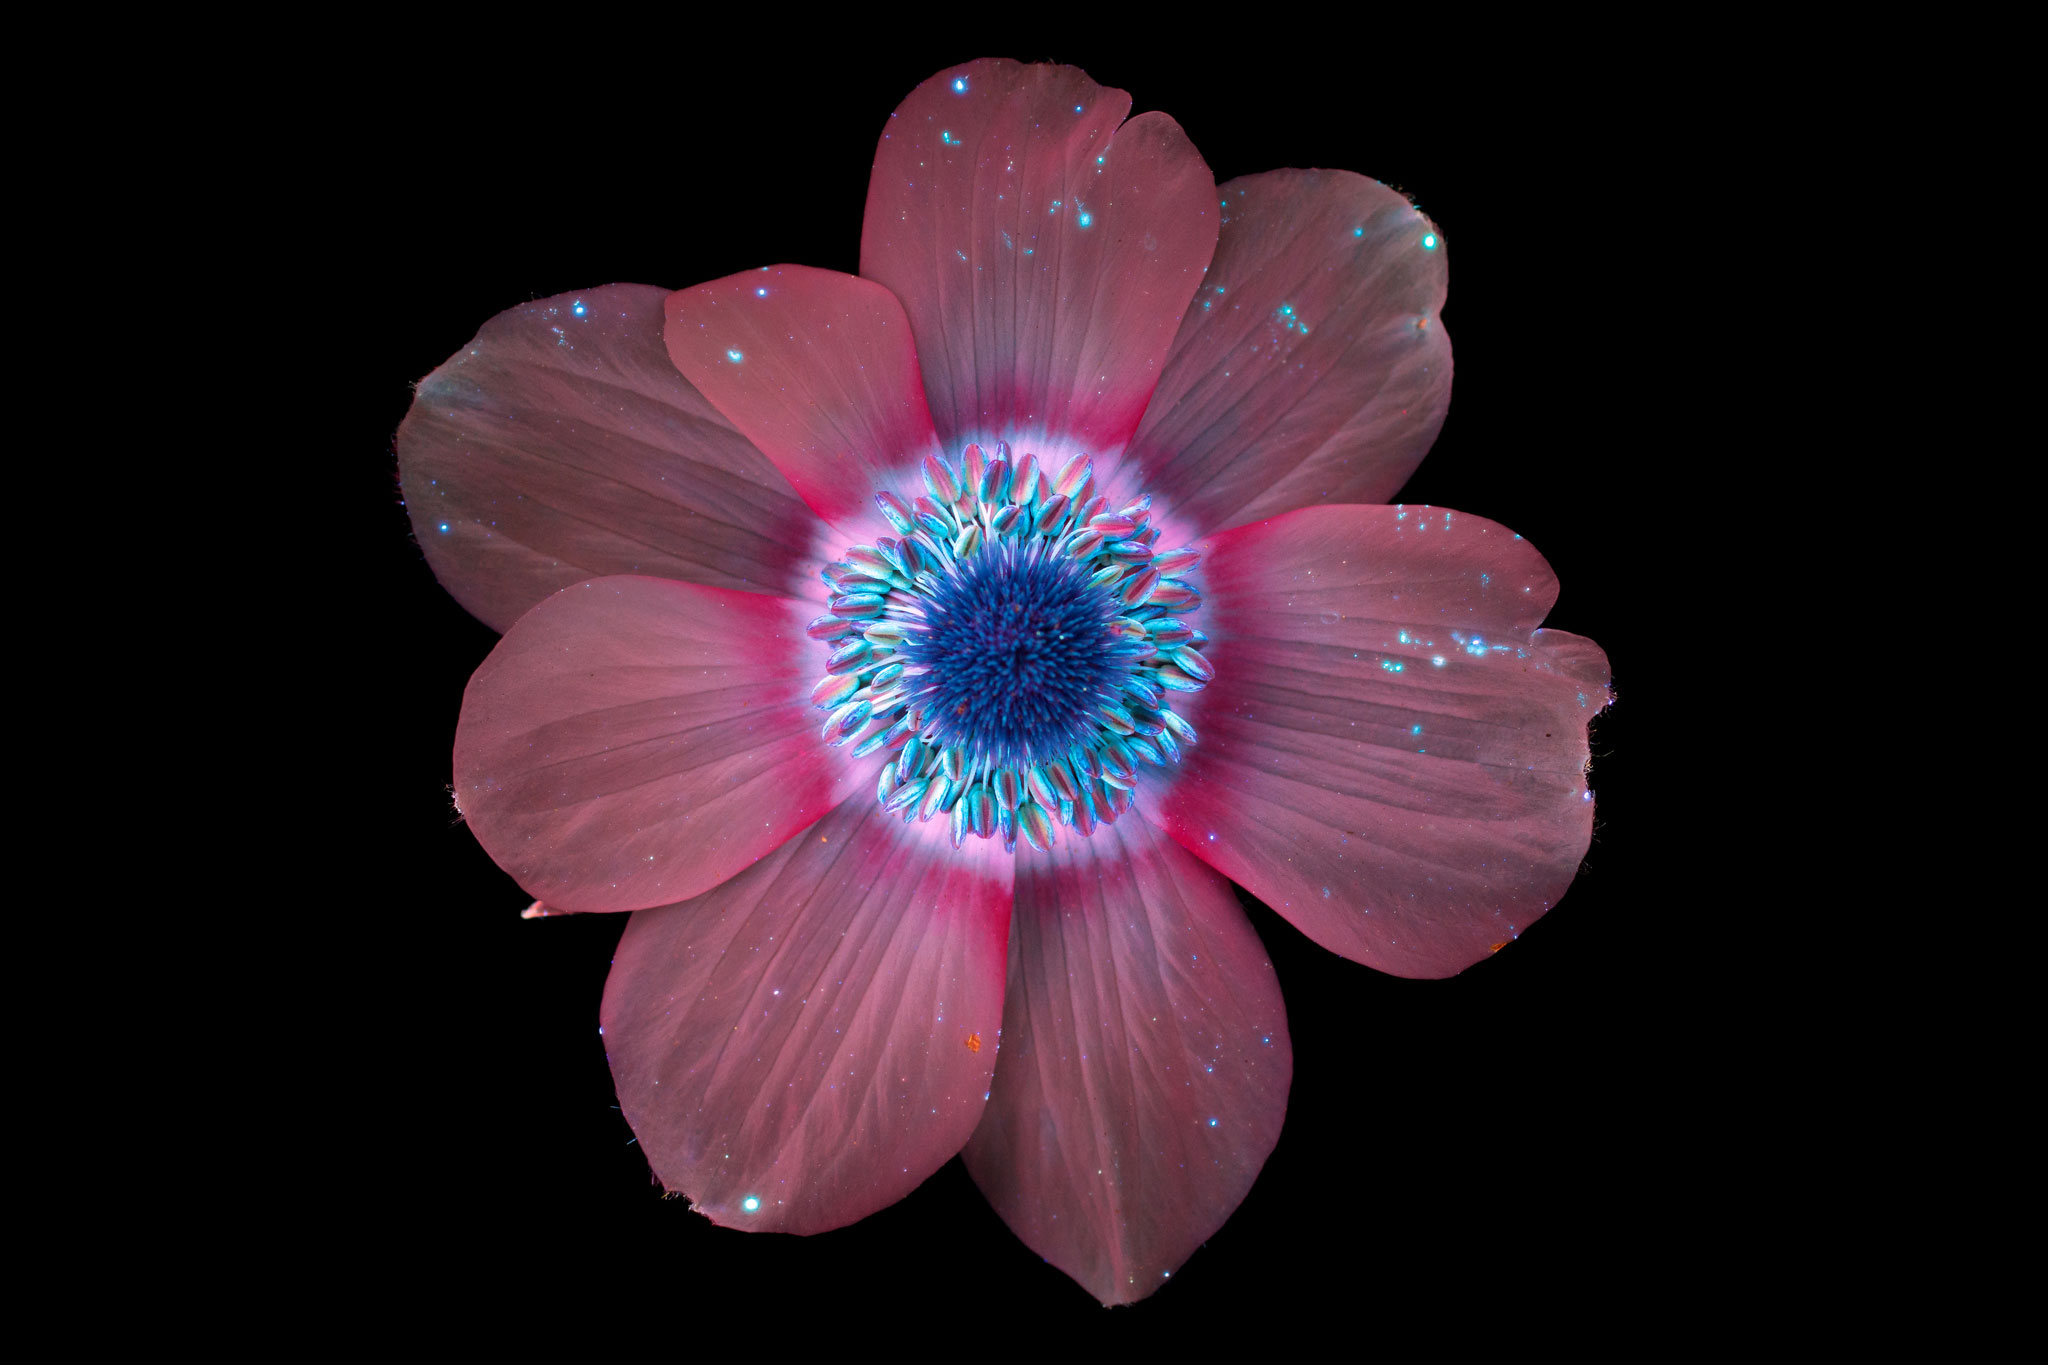 Pictures: Flowers Glow Under UV-Induced Visible Fluorescence